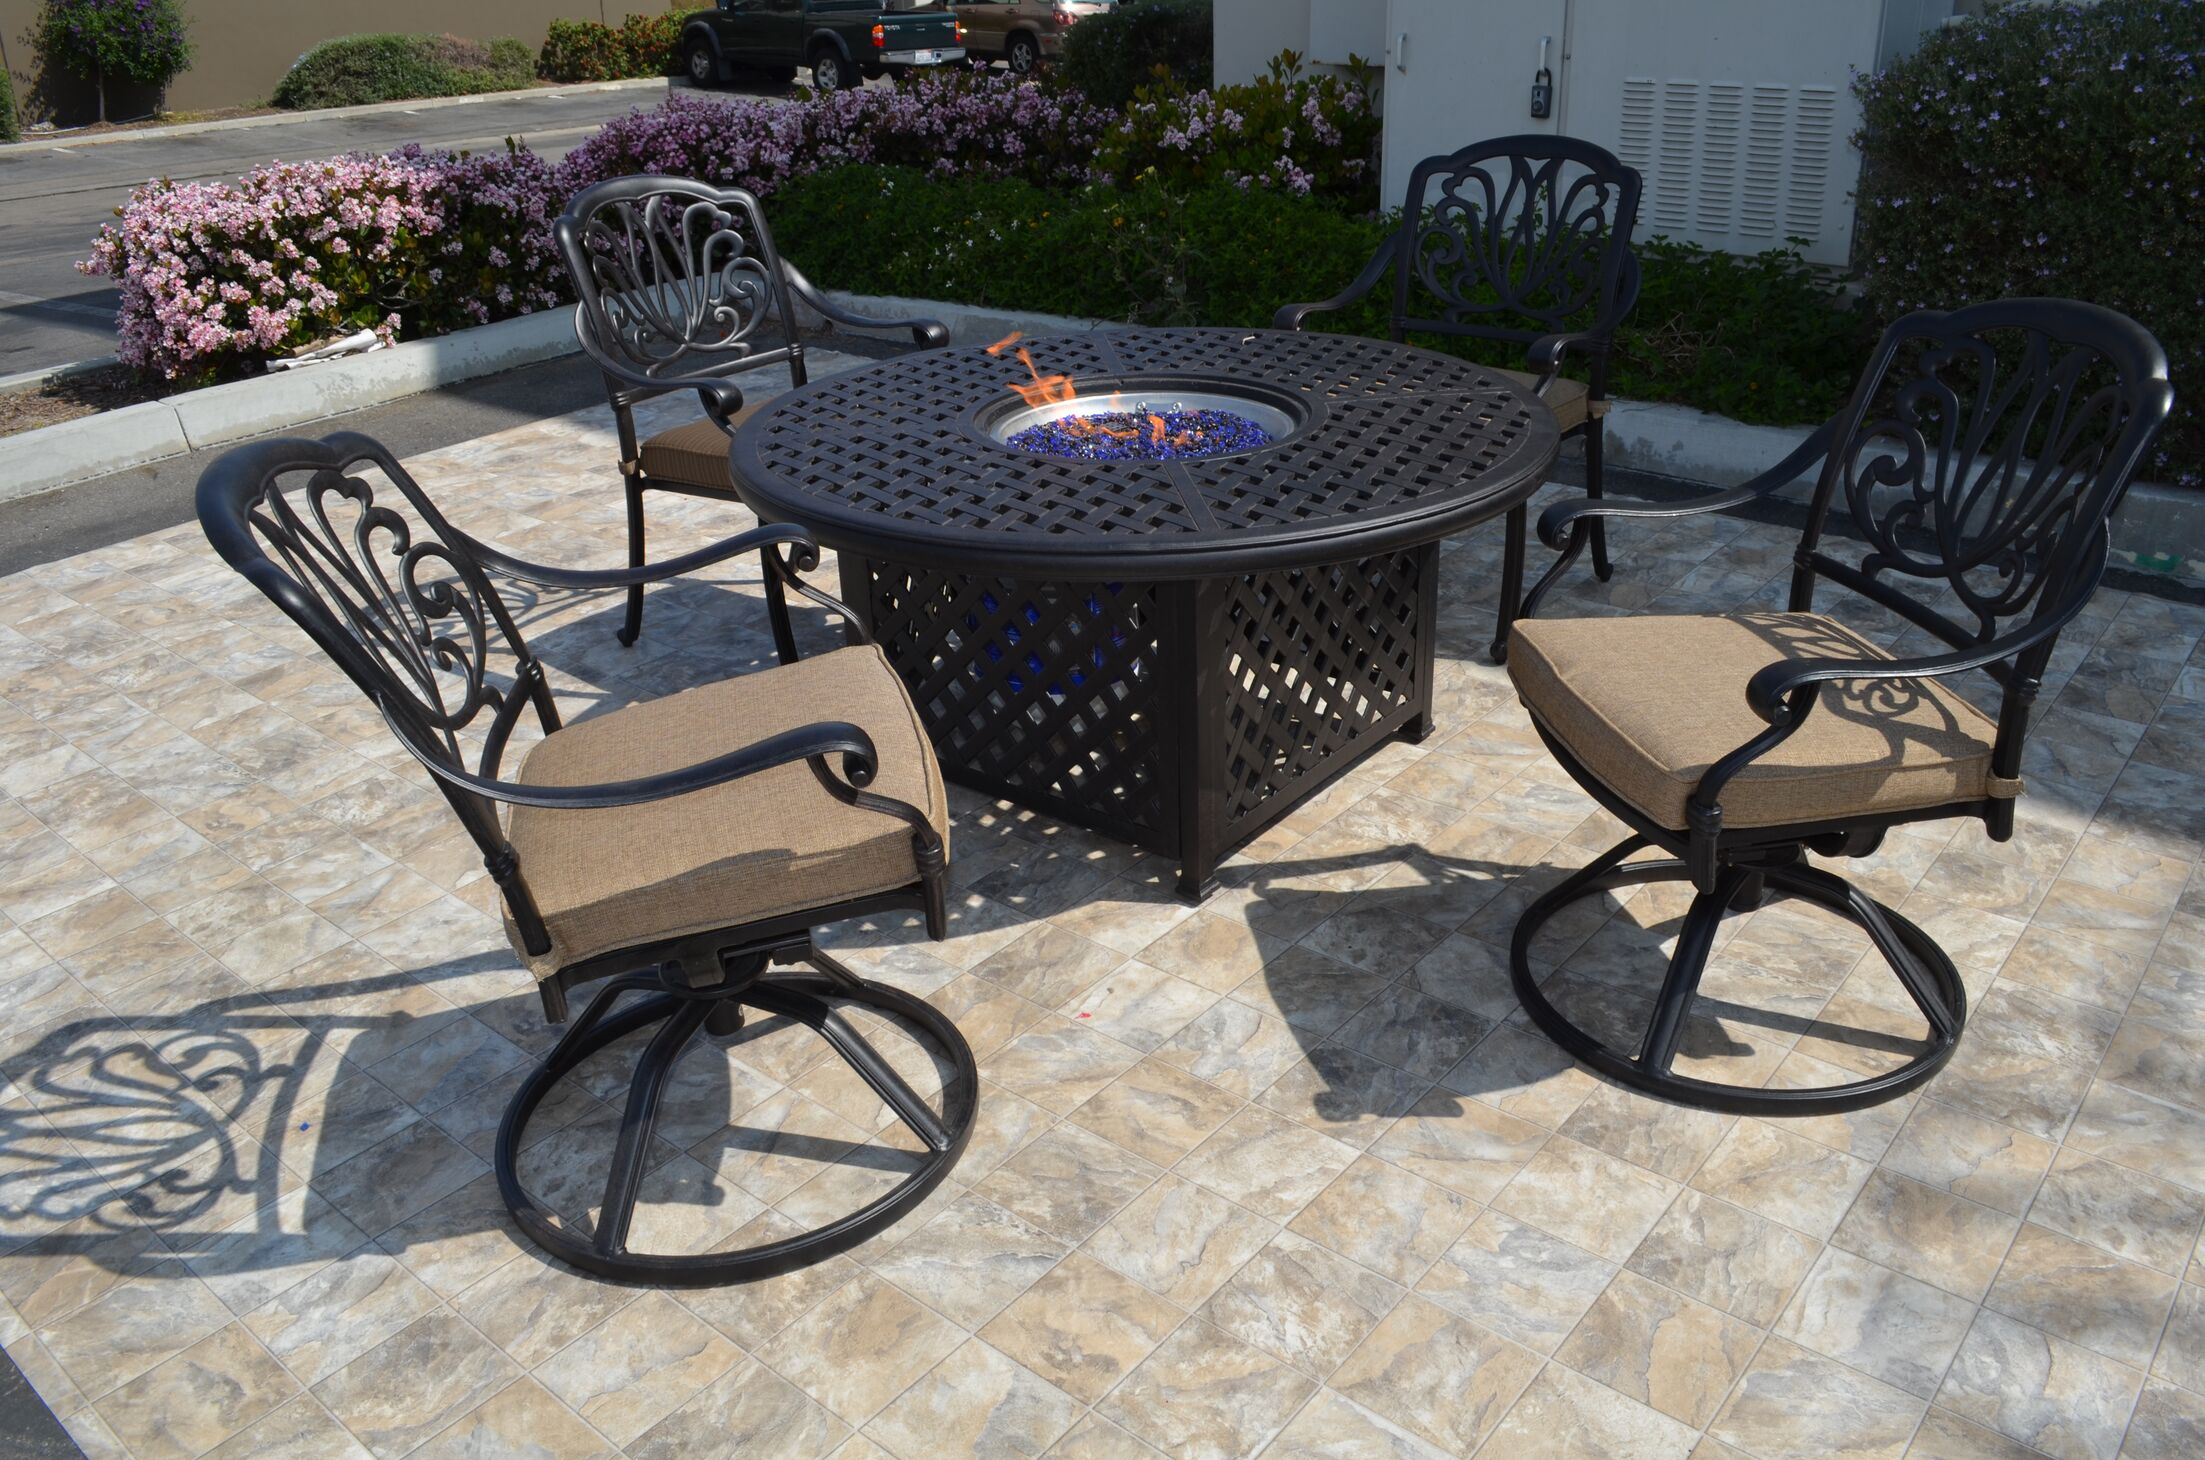 Kristy 5 Piece Conversation Set with Cushions